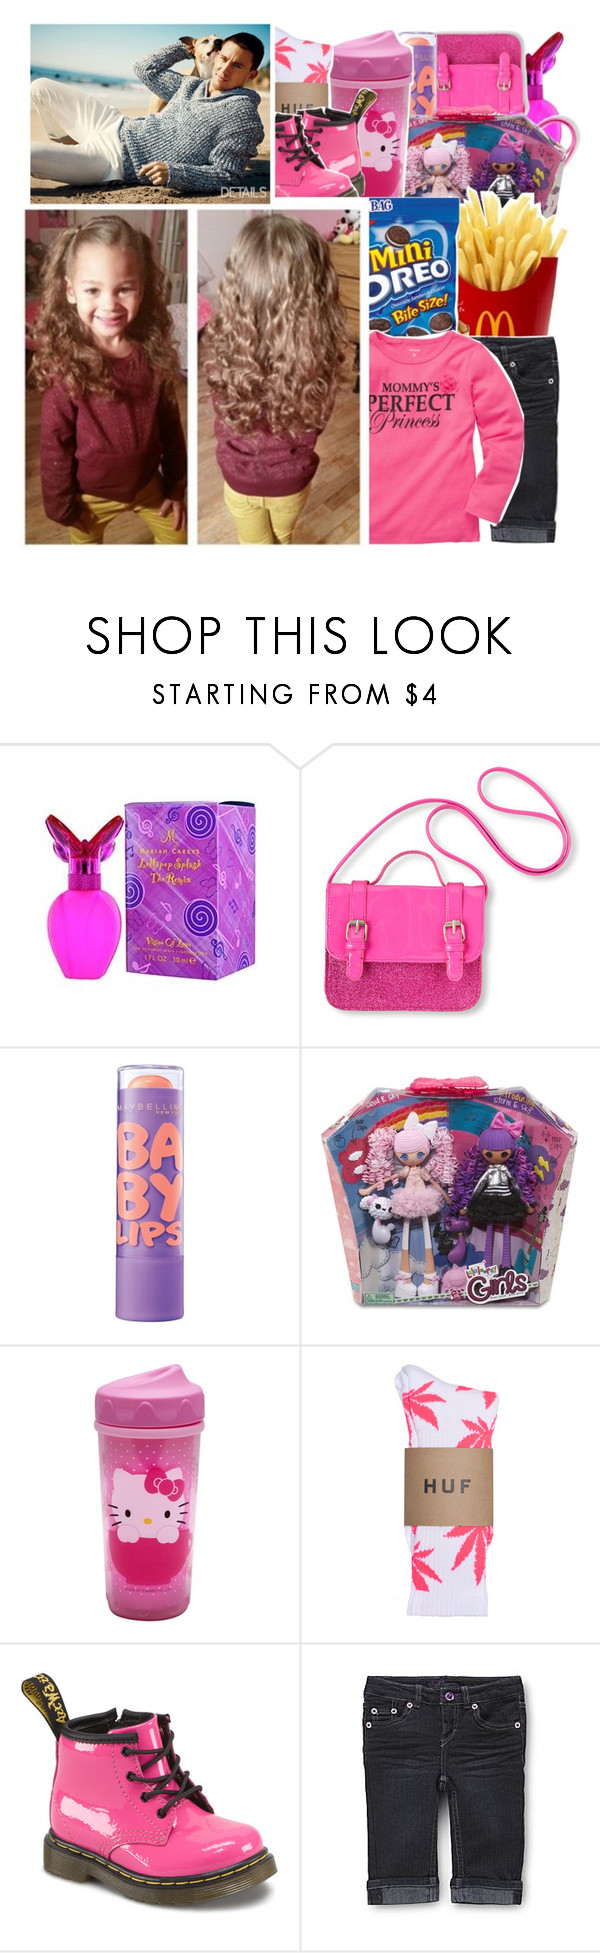 """{♡ Adding song lyrics later ♡}"" by florida-dreams ❤ liked on Polyvore featuring interior, interiors, interior design, home, home decor, interior decorating, Mariah Carey, Maybelline, Lalaloopsy and Hello Kitty"